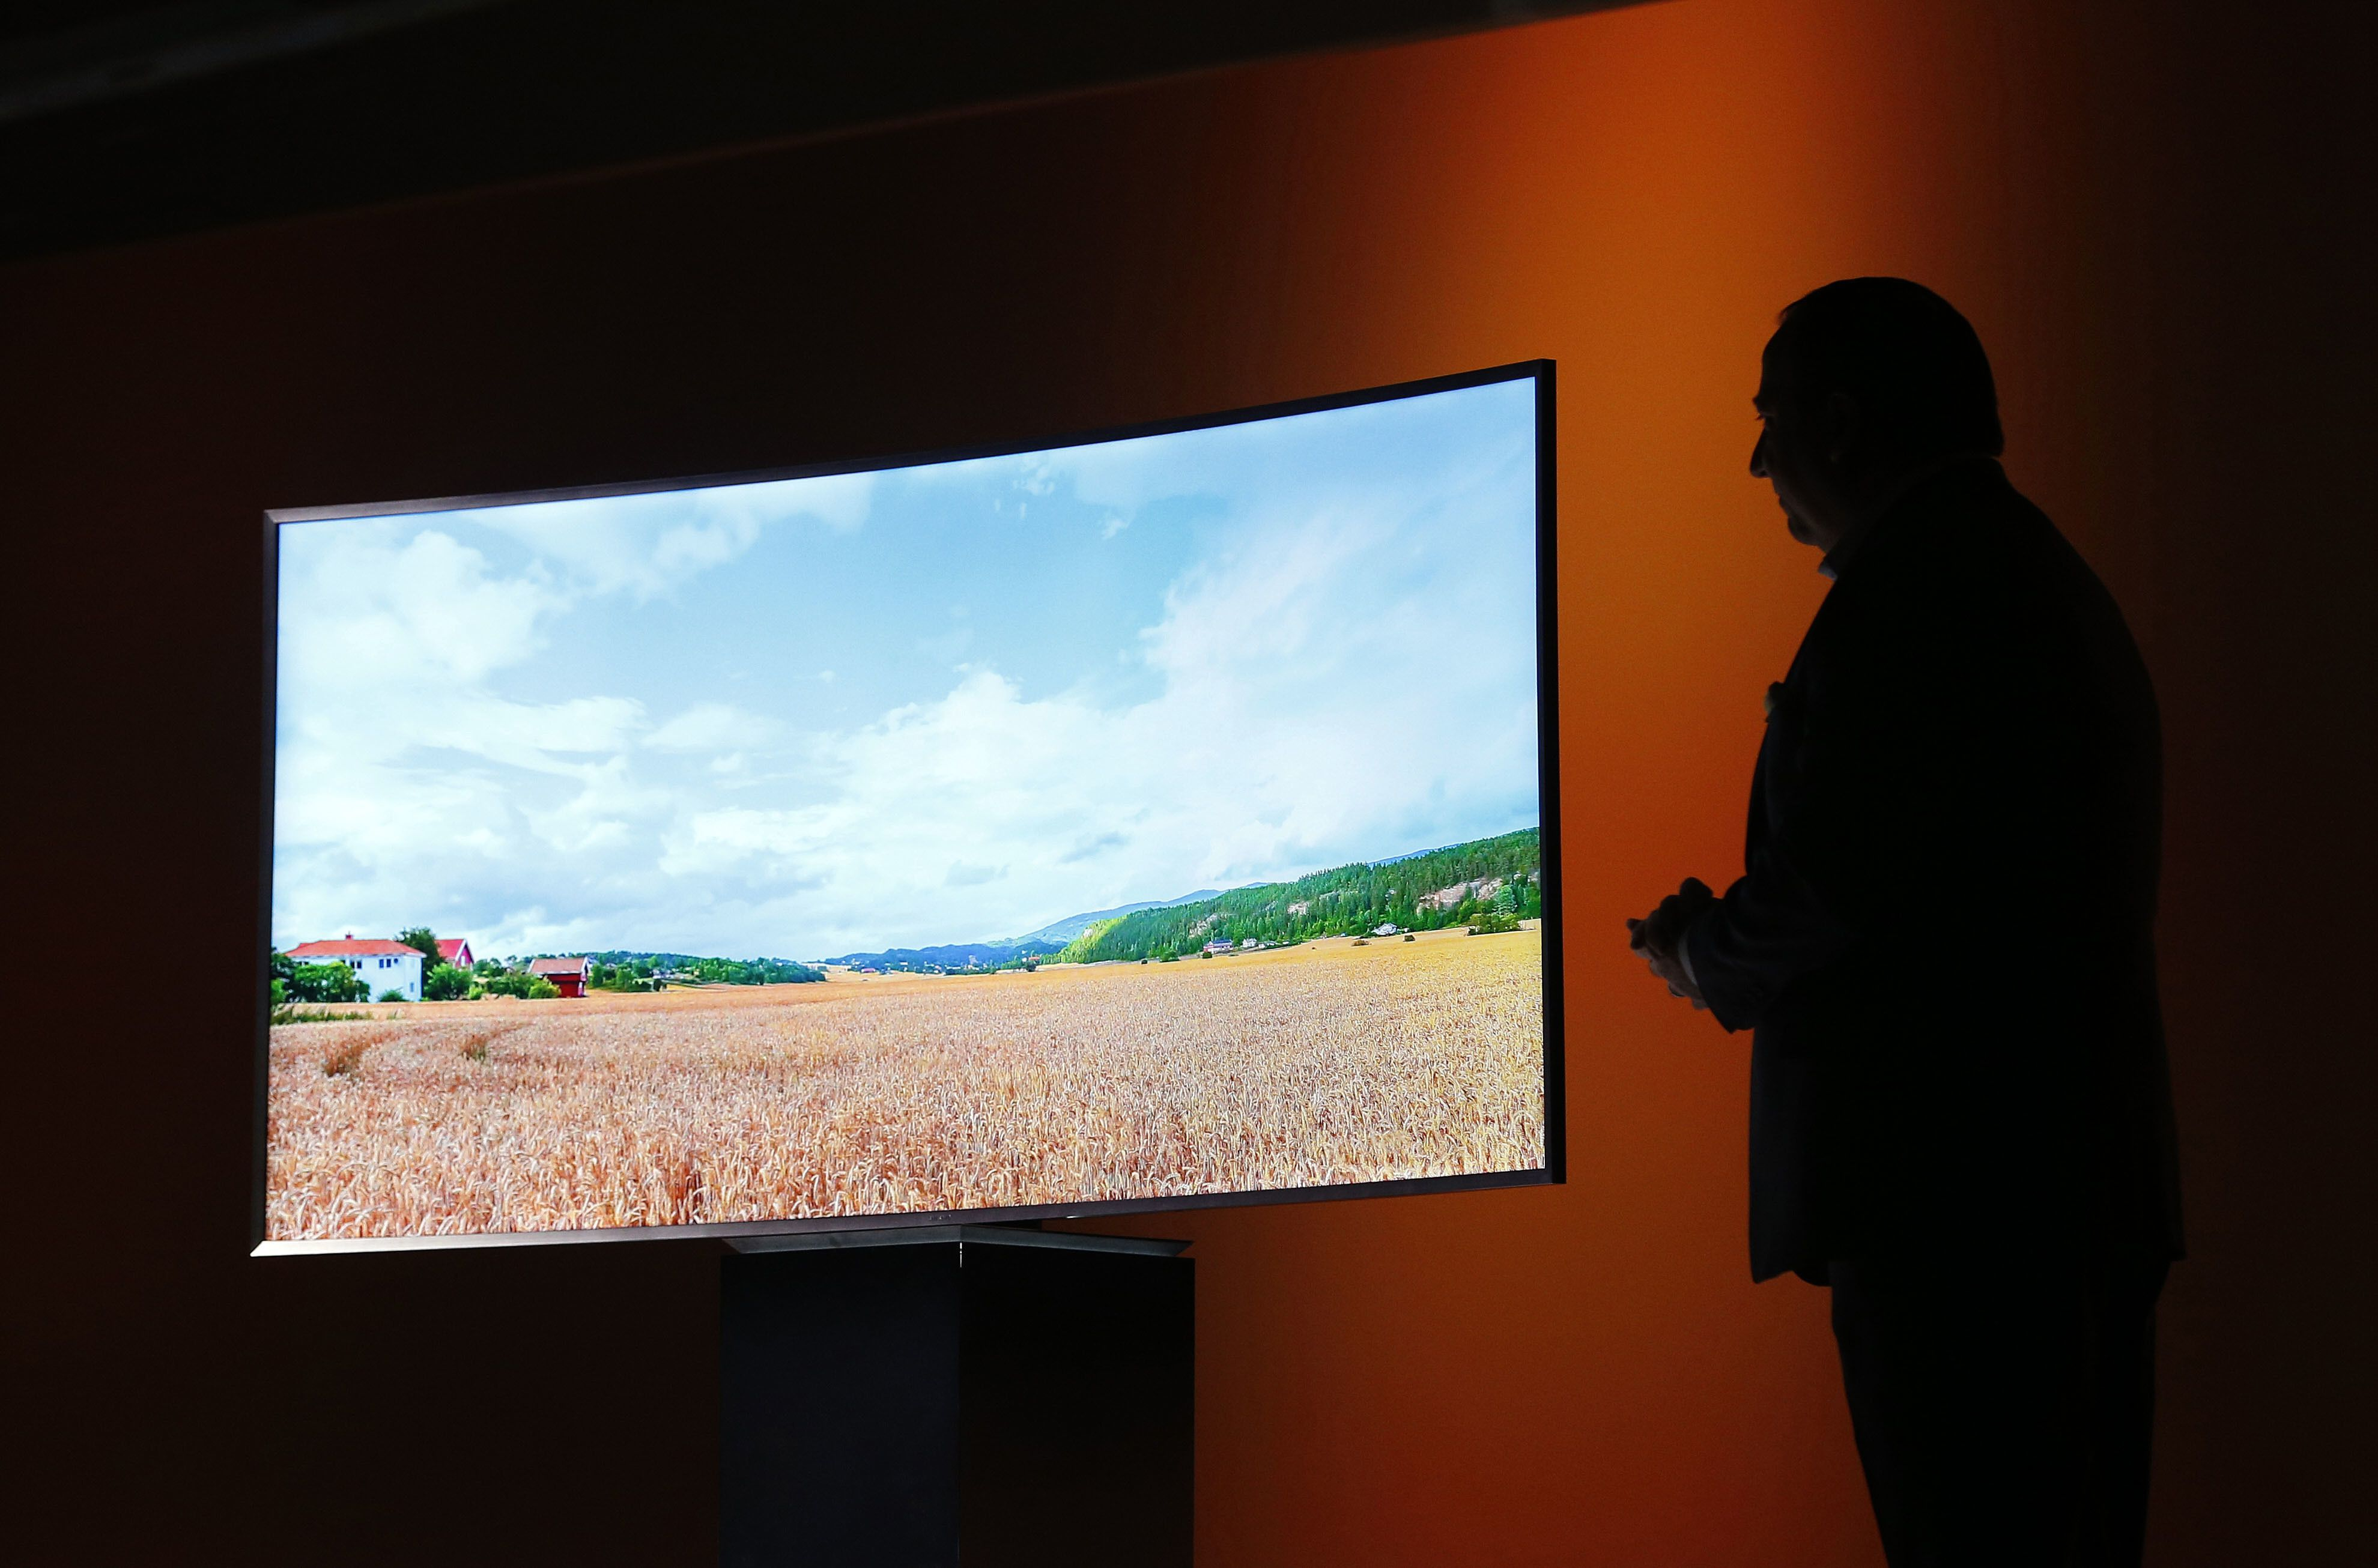 Your TV May Be Using Way More Power Than You Think